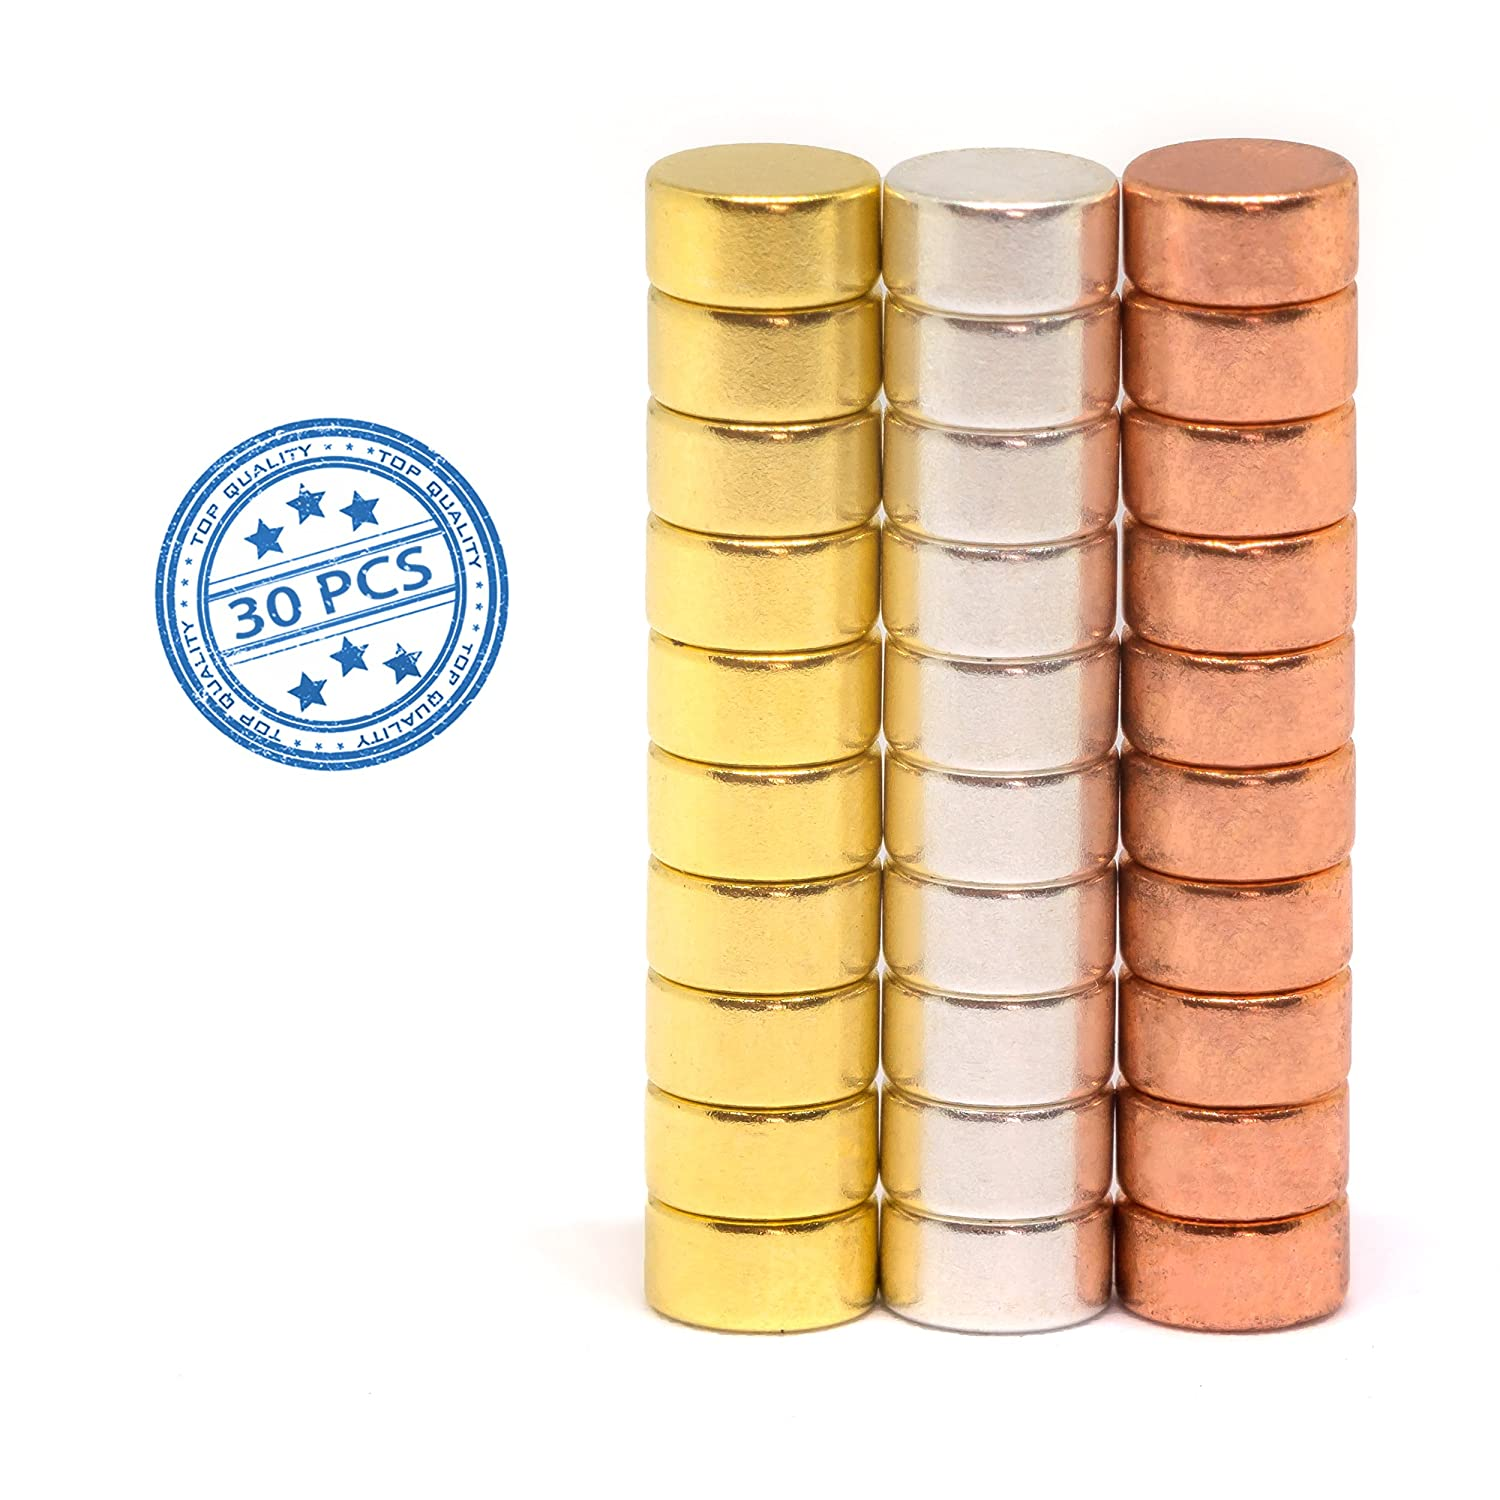 Amazon.com: Round Colored Refrigerator Magnets | Office Magnets ...